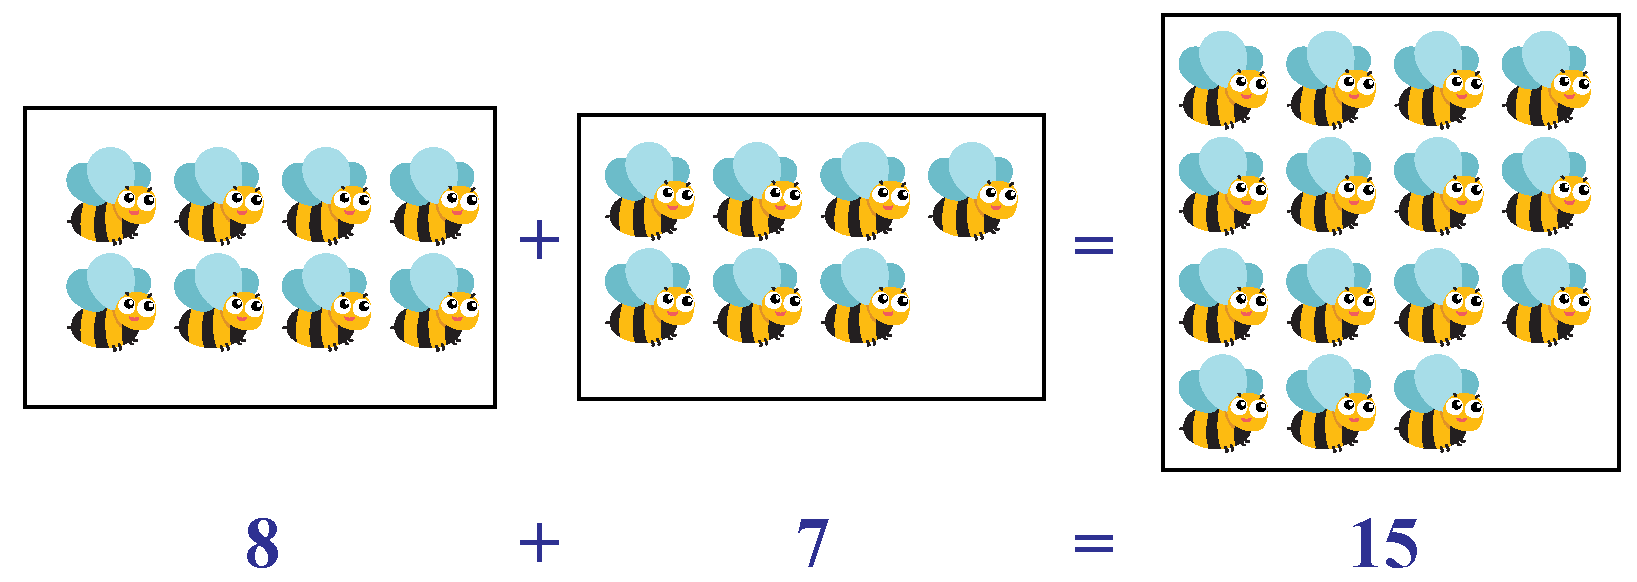 Bees shown to be added together, 8 +7=15